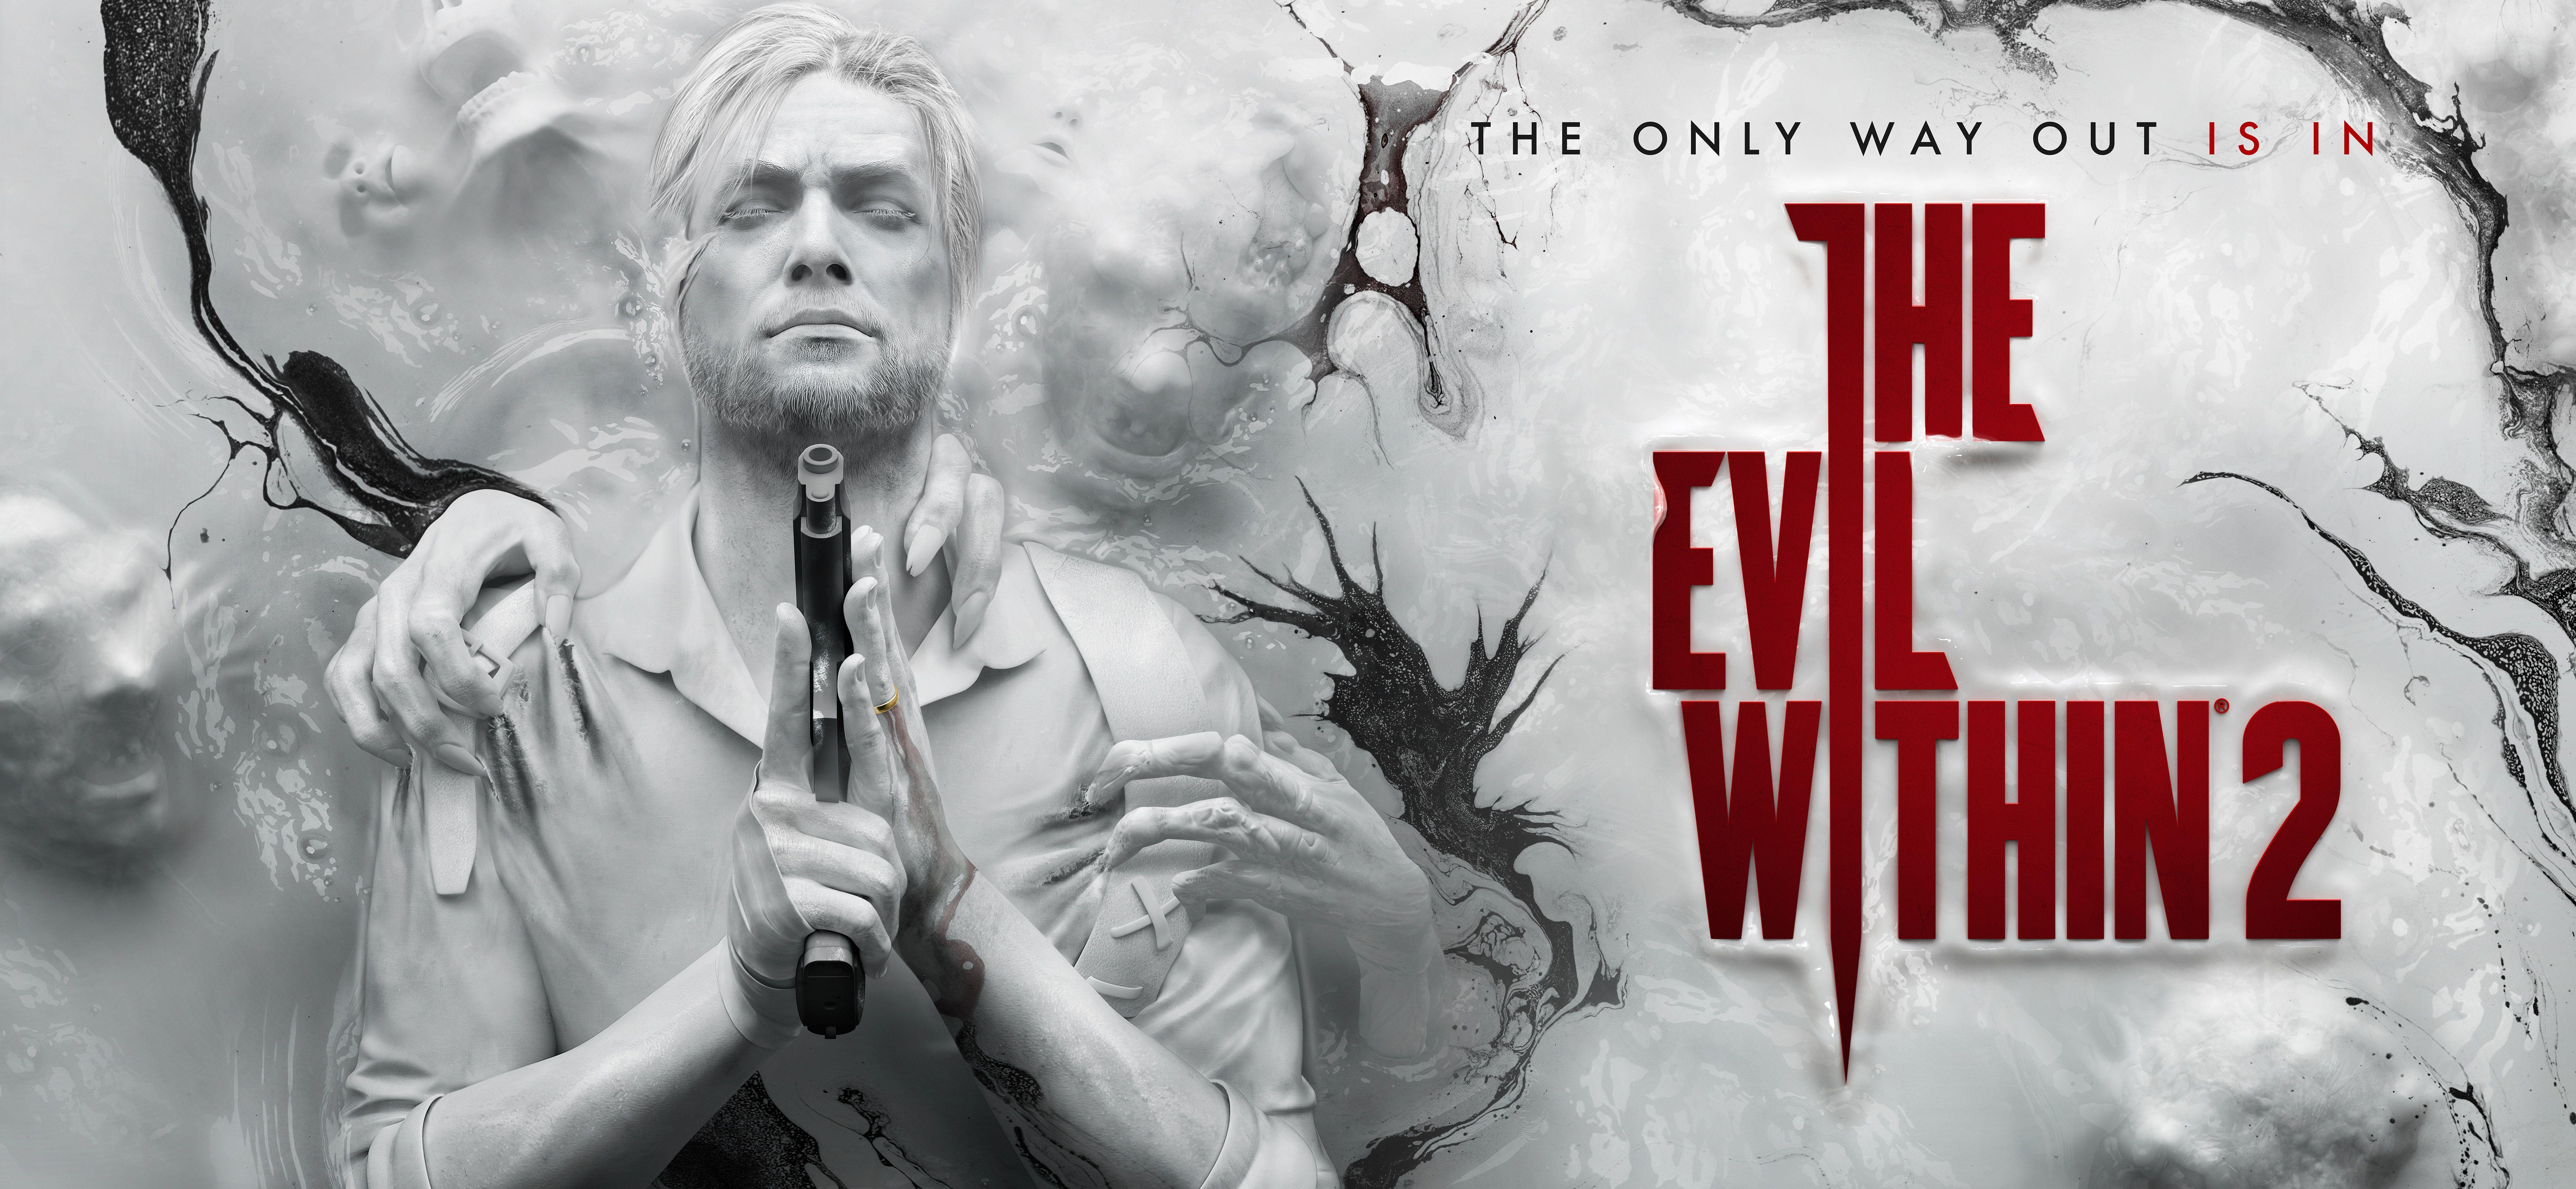 Evil Within Wallpaper